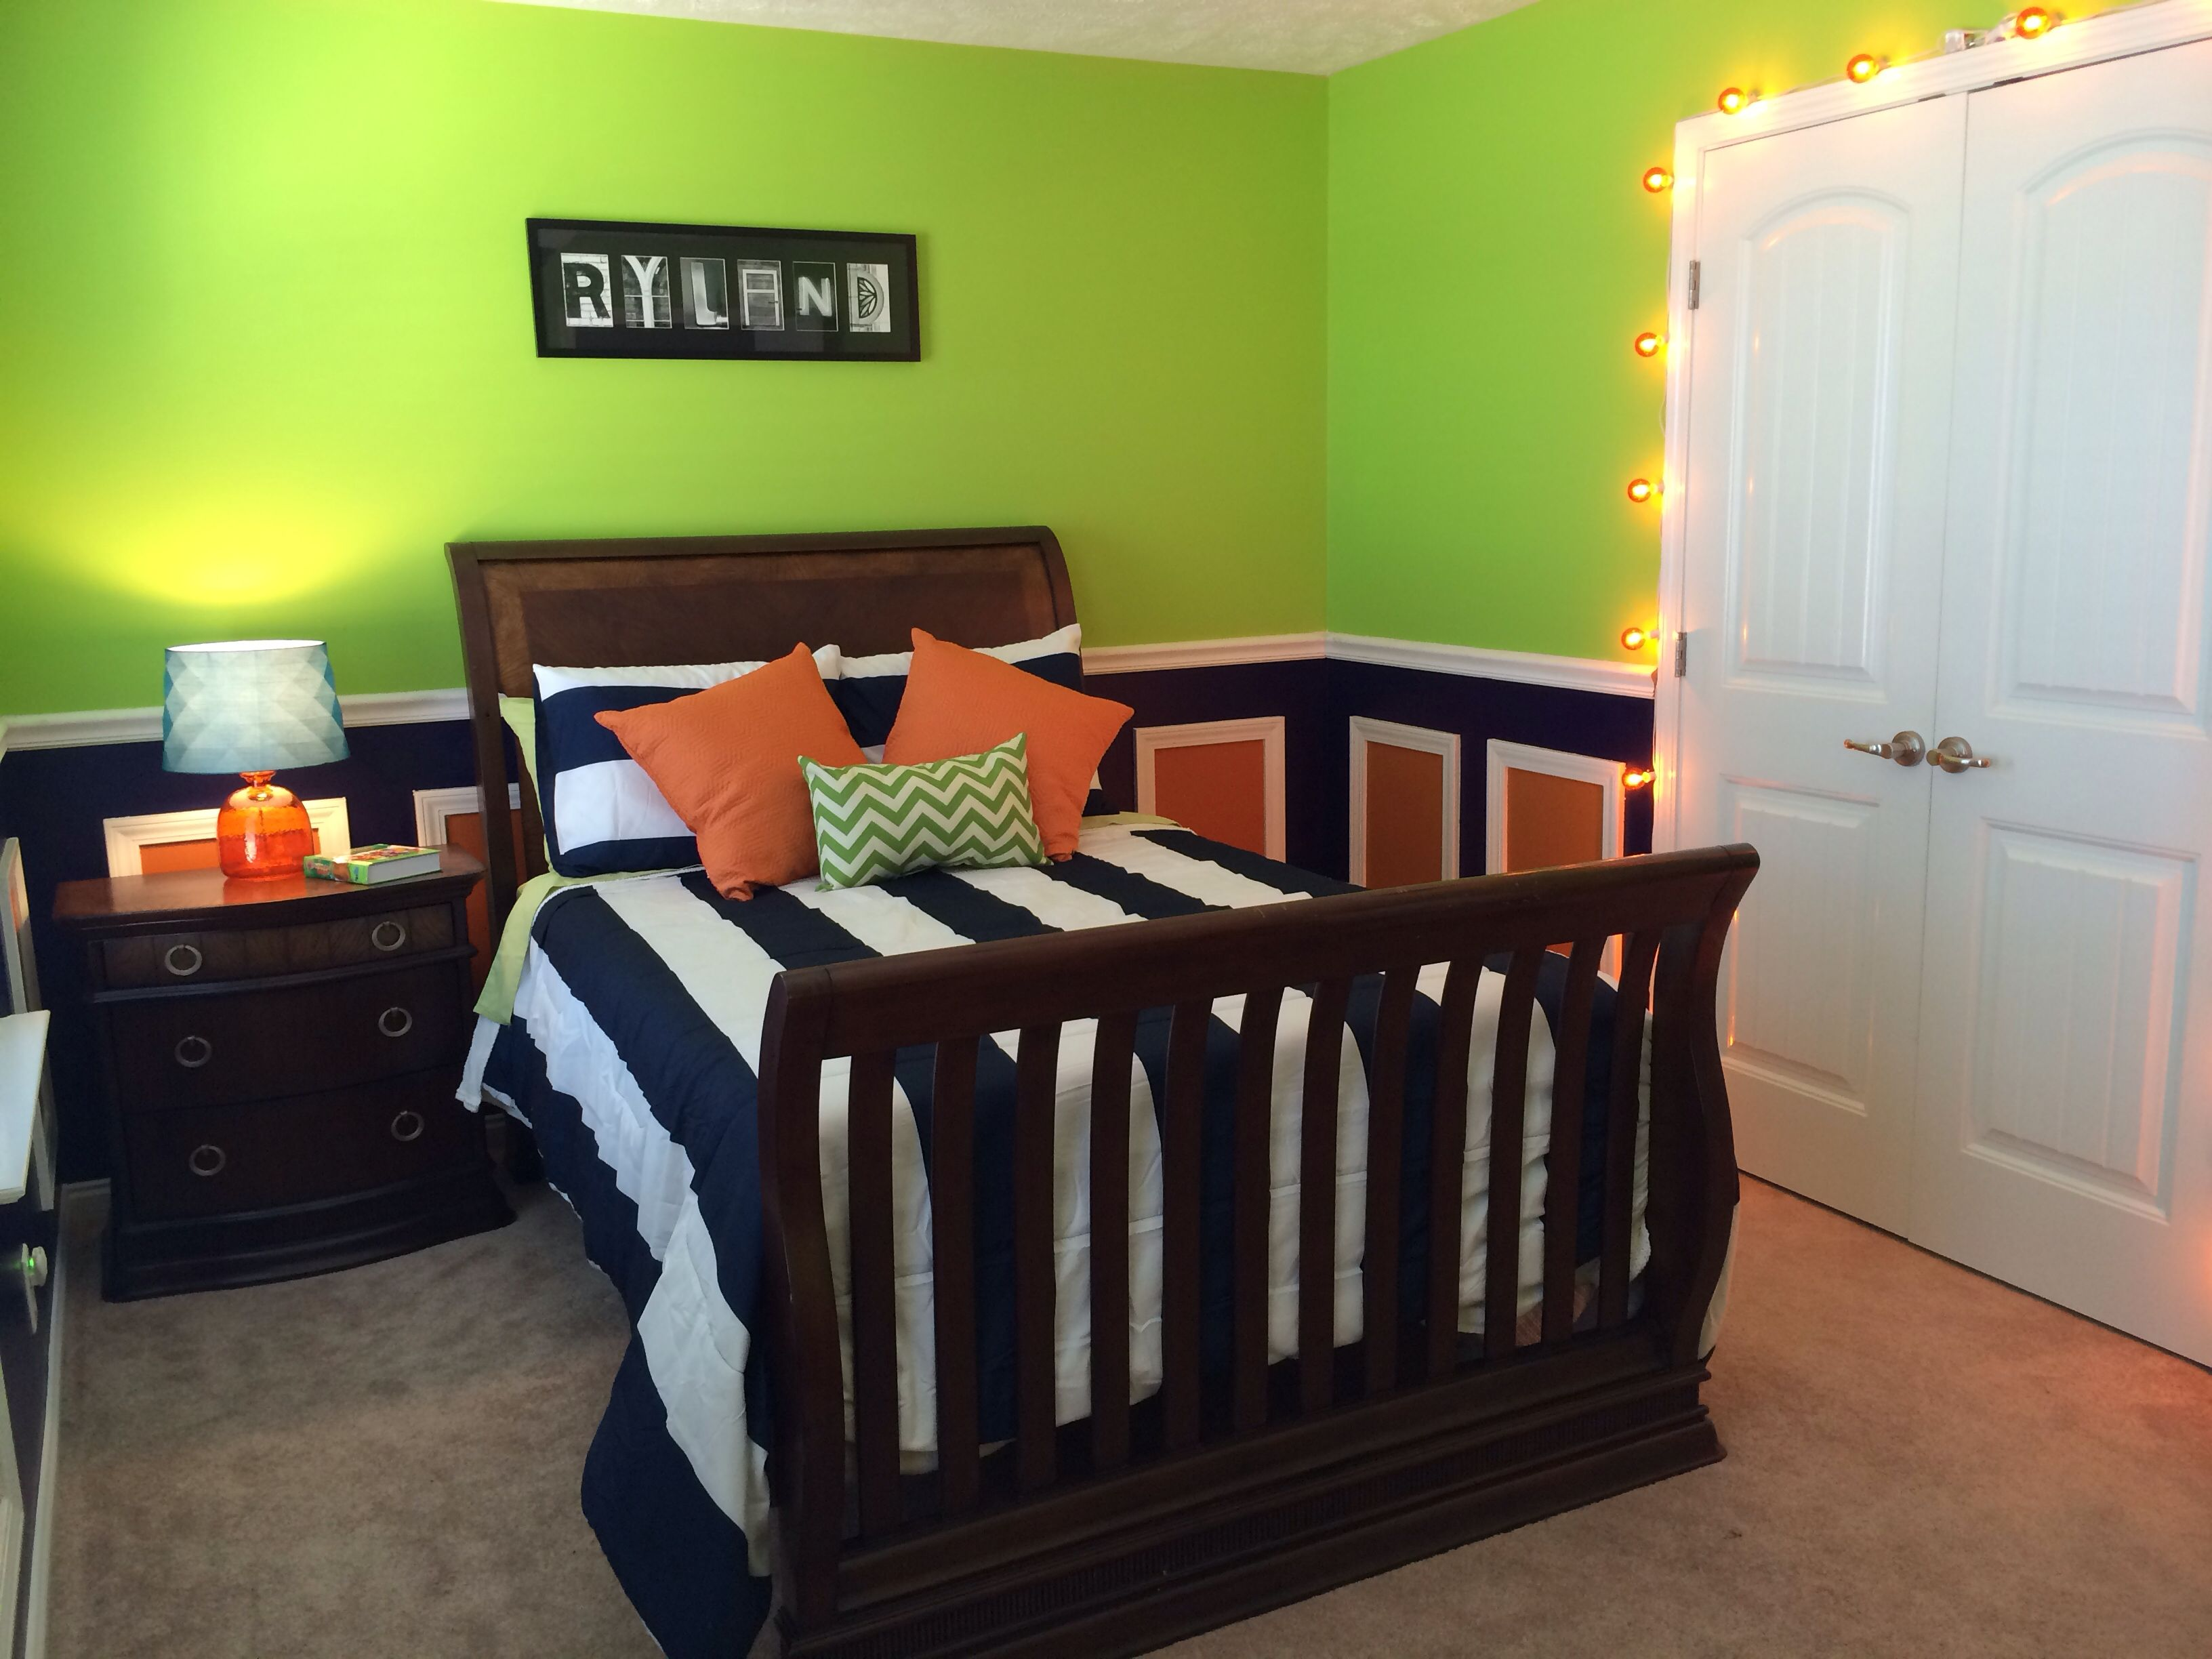 Green boys bedroom ideas - 17 Best Ideas About Orange Boys Bedrooms On Pinterest Orange Boys Rooms Boys Bedroom Colors And Boys Bedroom Paint